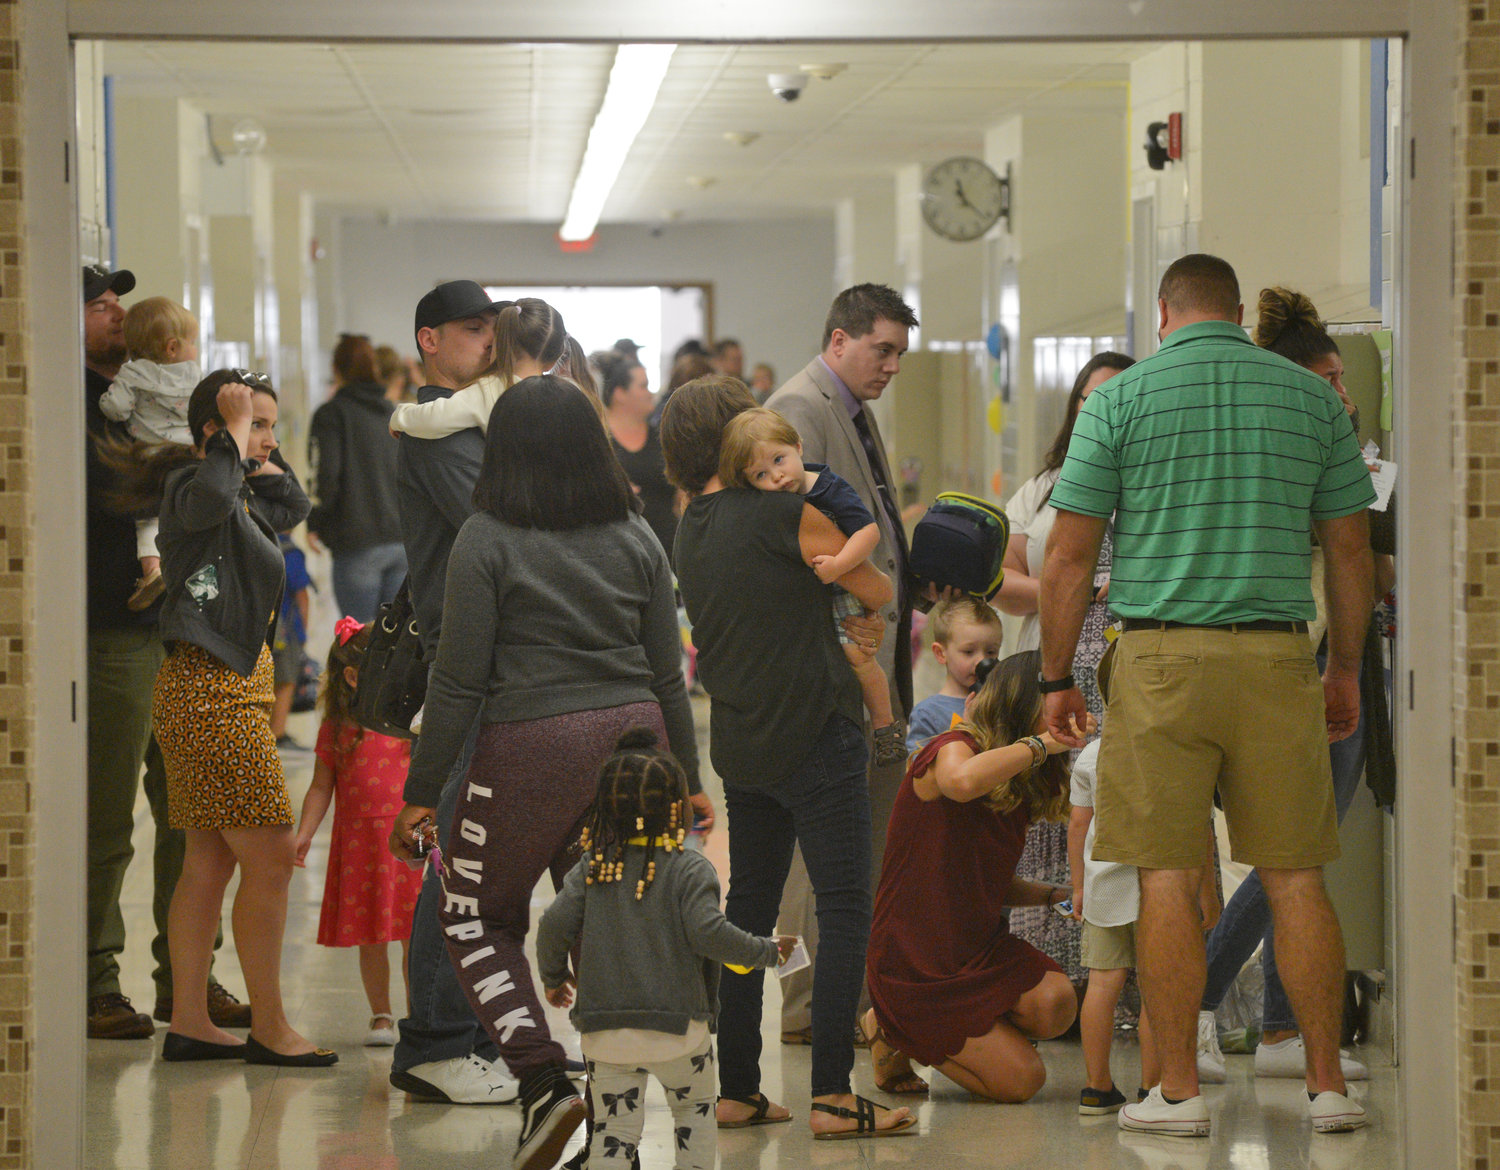 The halls at Rome Catholic are once again filled with students and- today- parents on the first of school at the newly re-opened Catholic school on Cypress St.